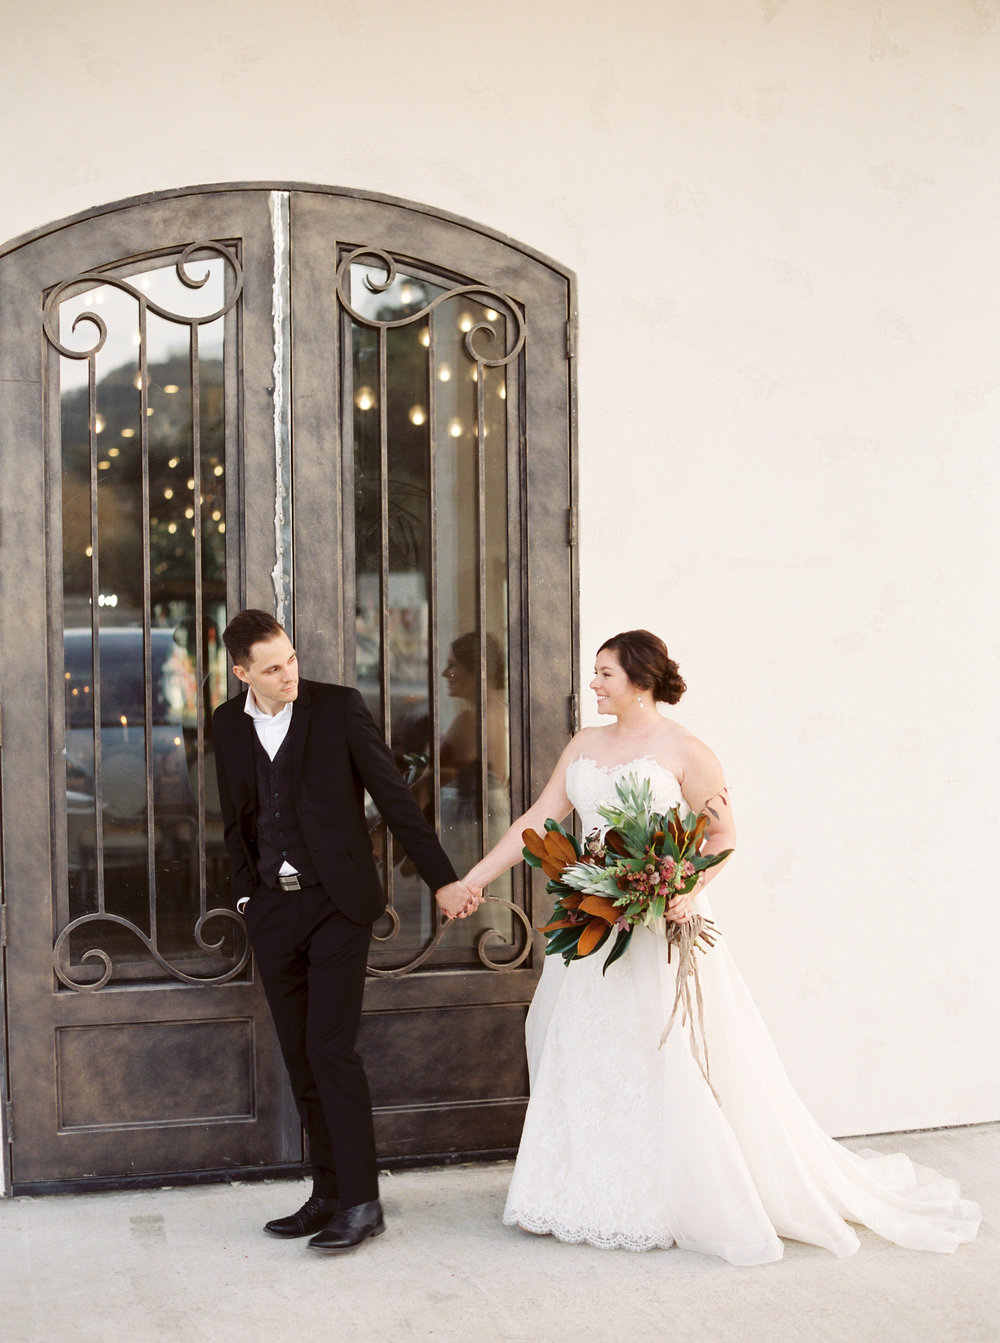 boho-inspired-wedding-at-casa-bella-in-sunol-california-116.jpg